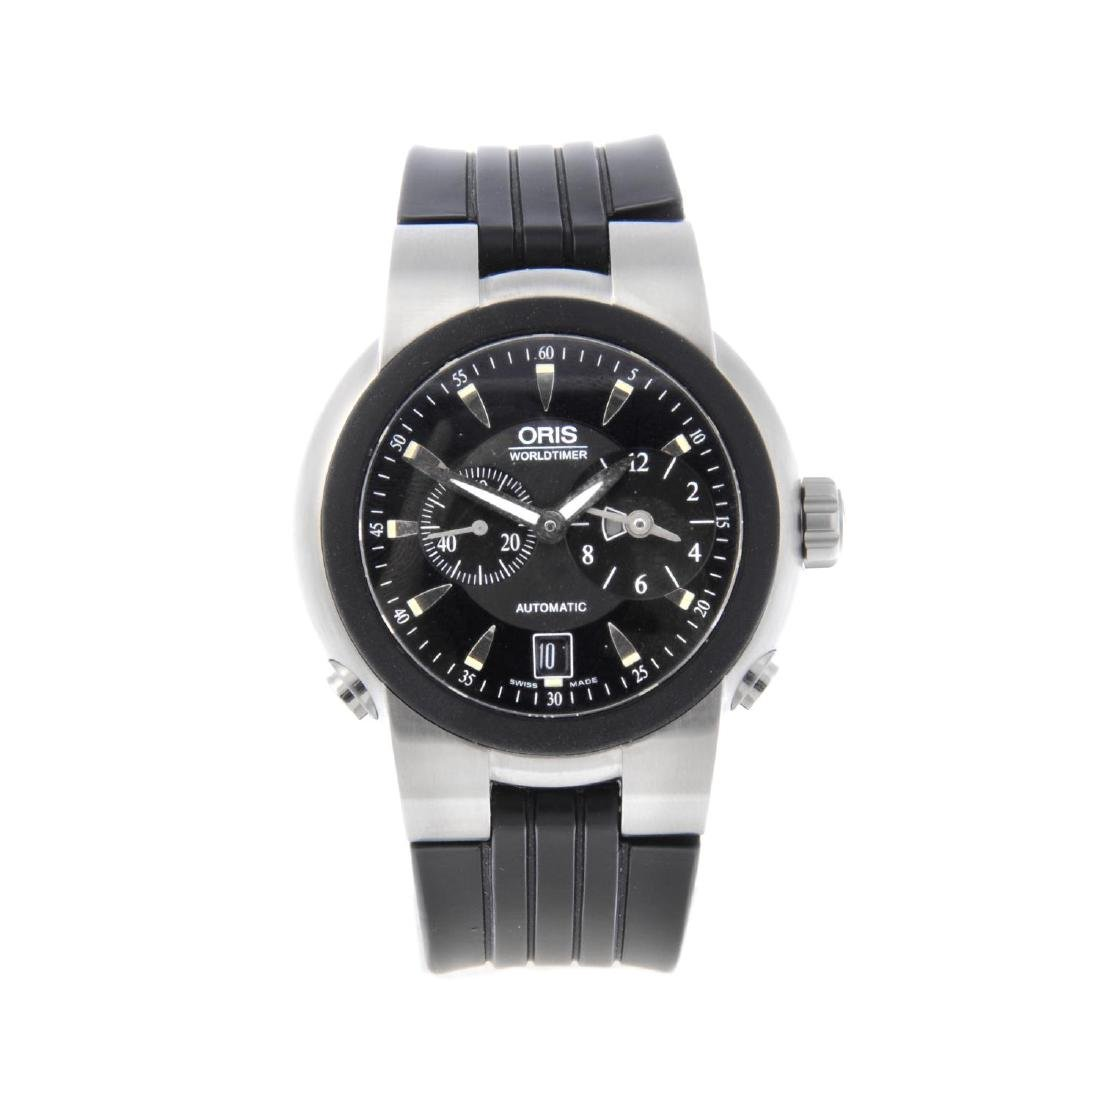 ORIS - a gentleman's TT1 Worldtimer wrist watch.